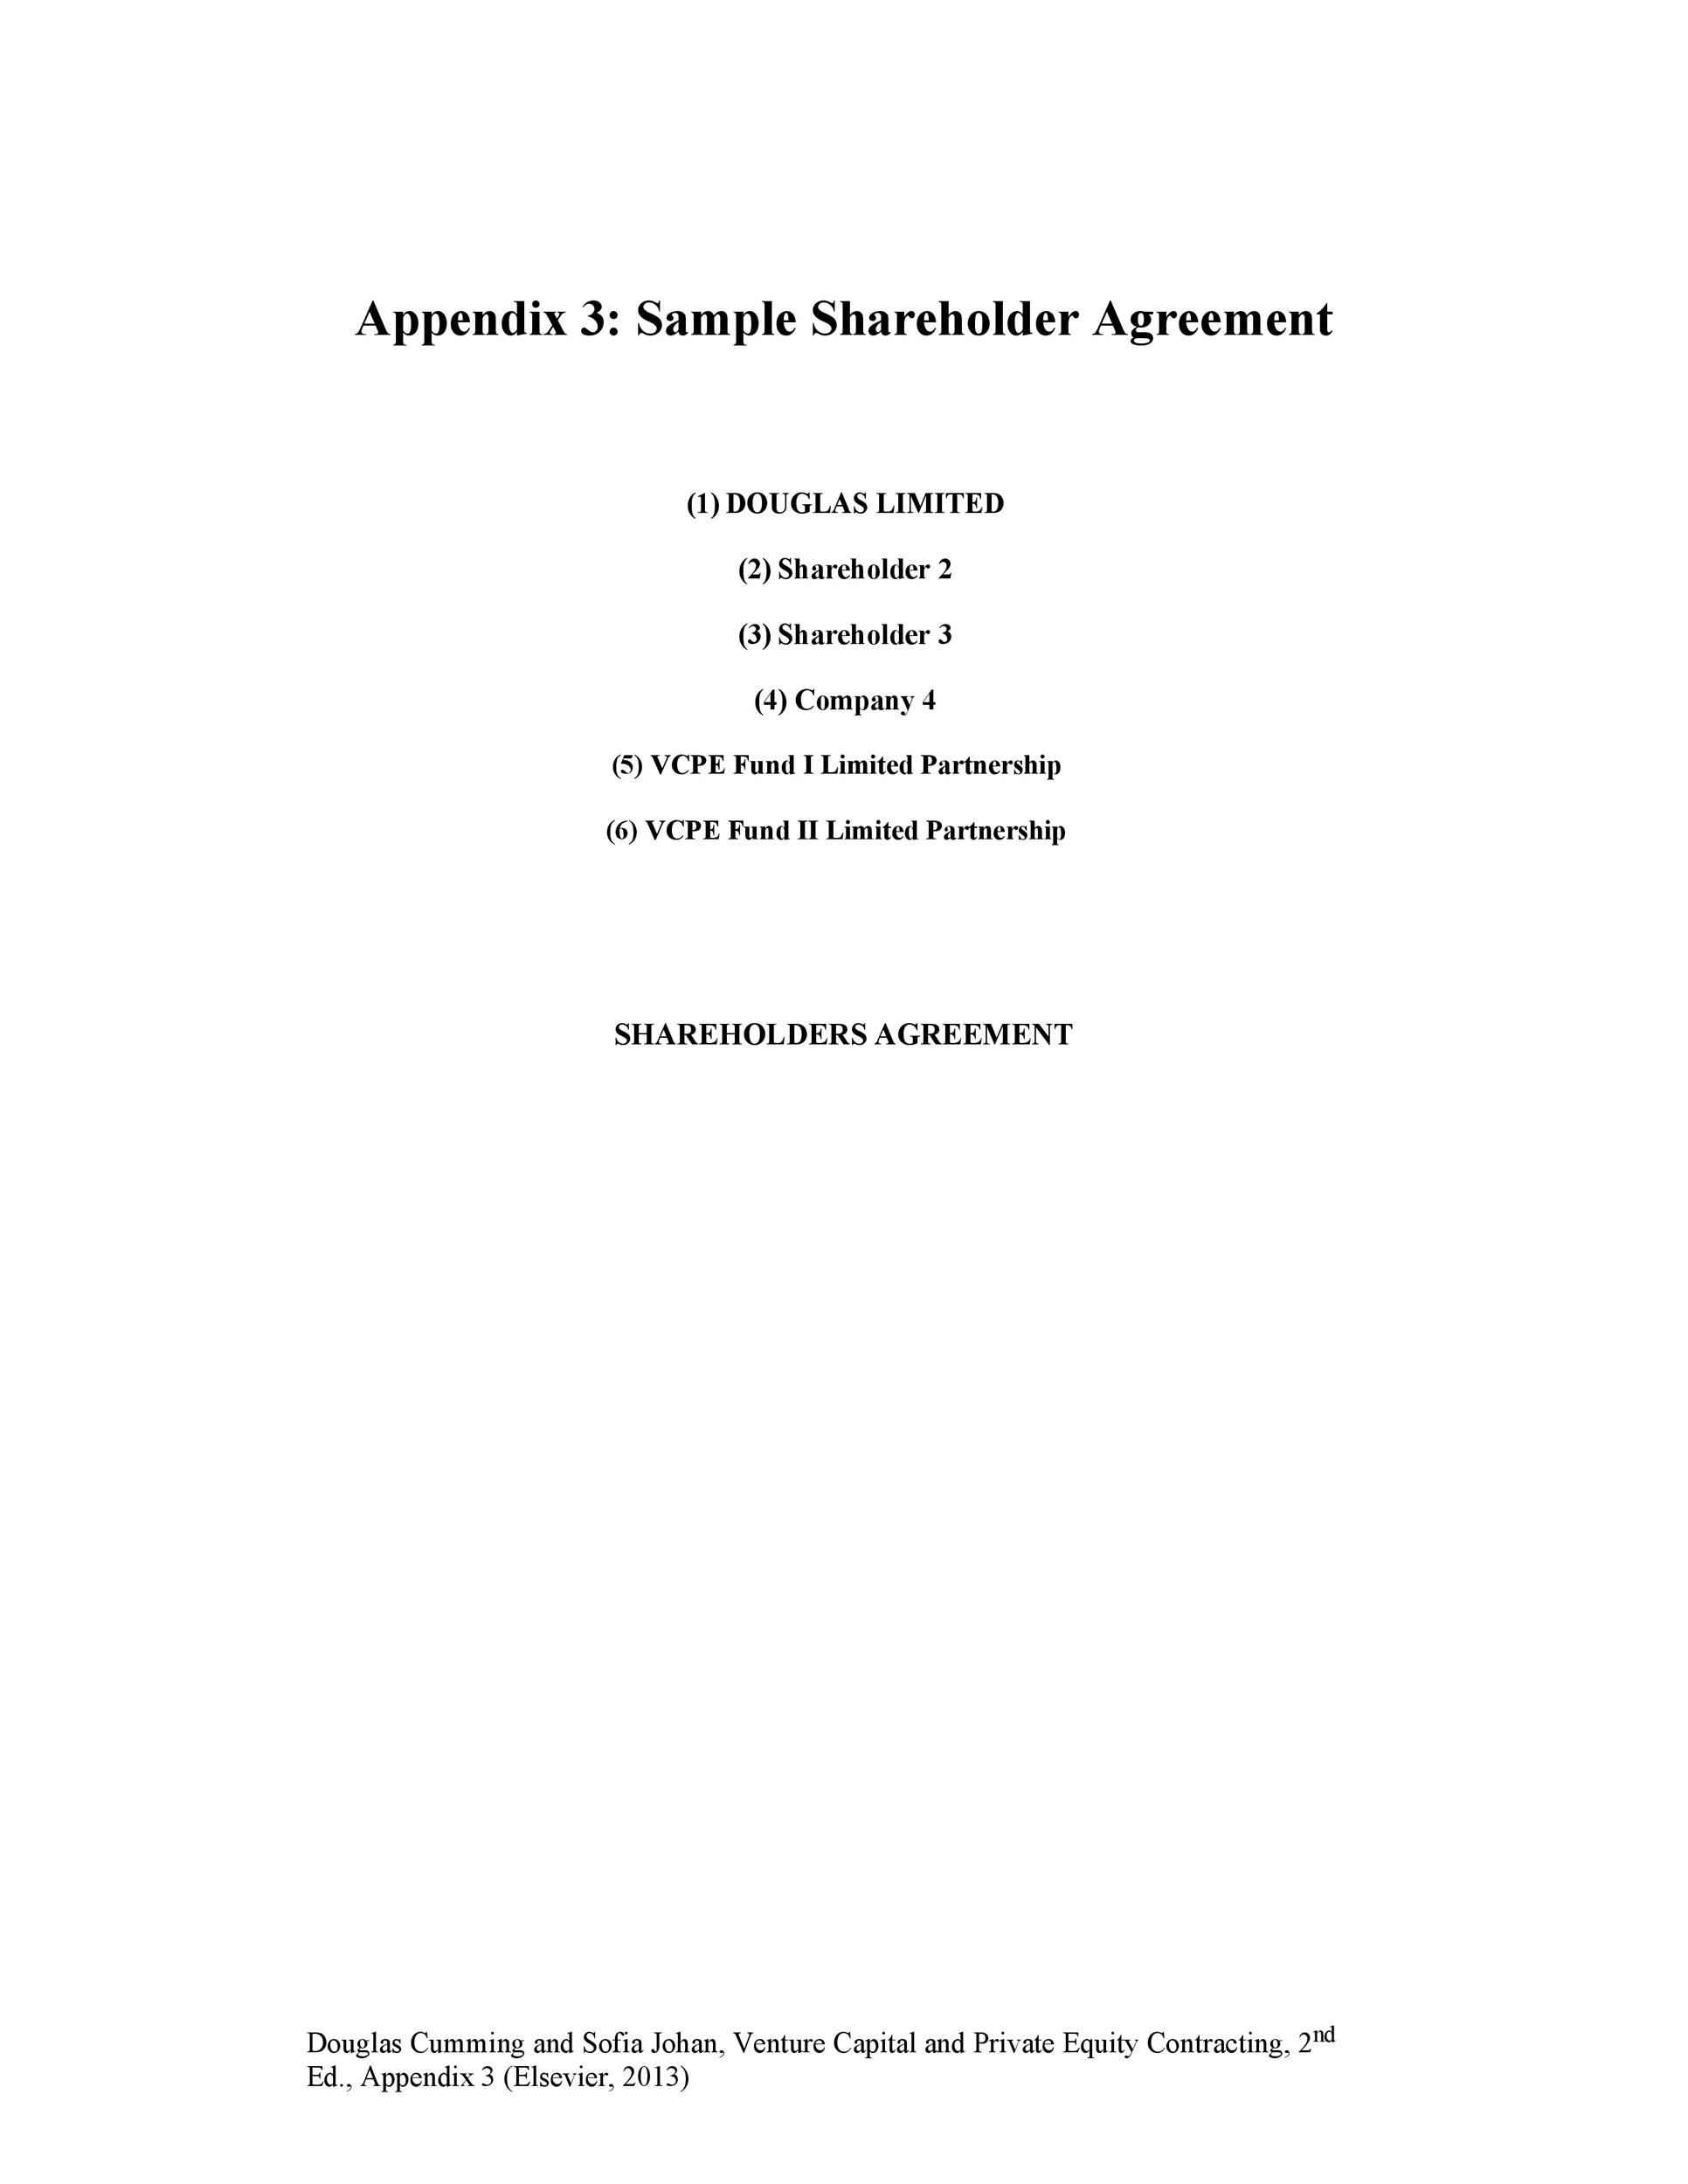 Free shareholder agreement 33